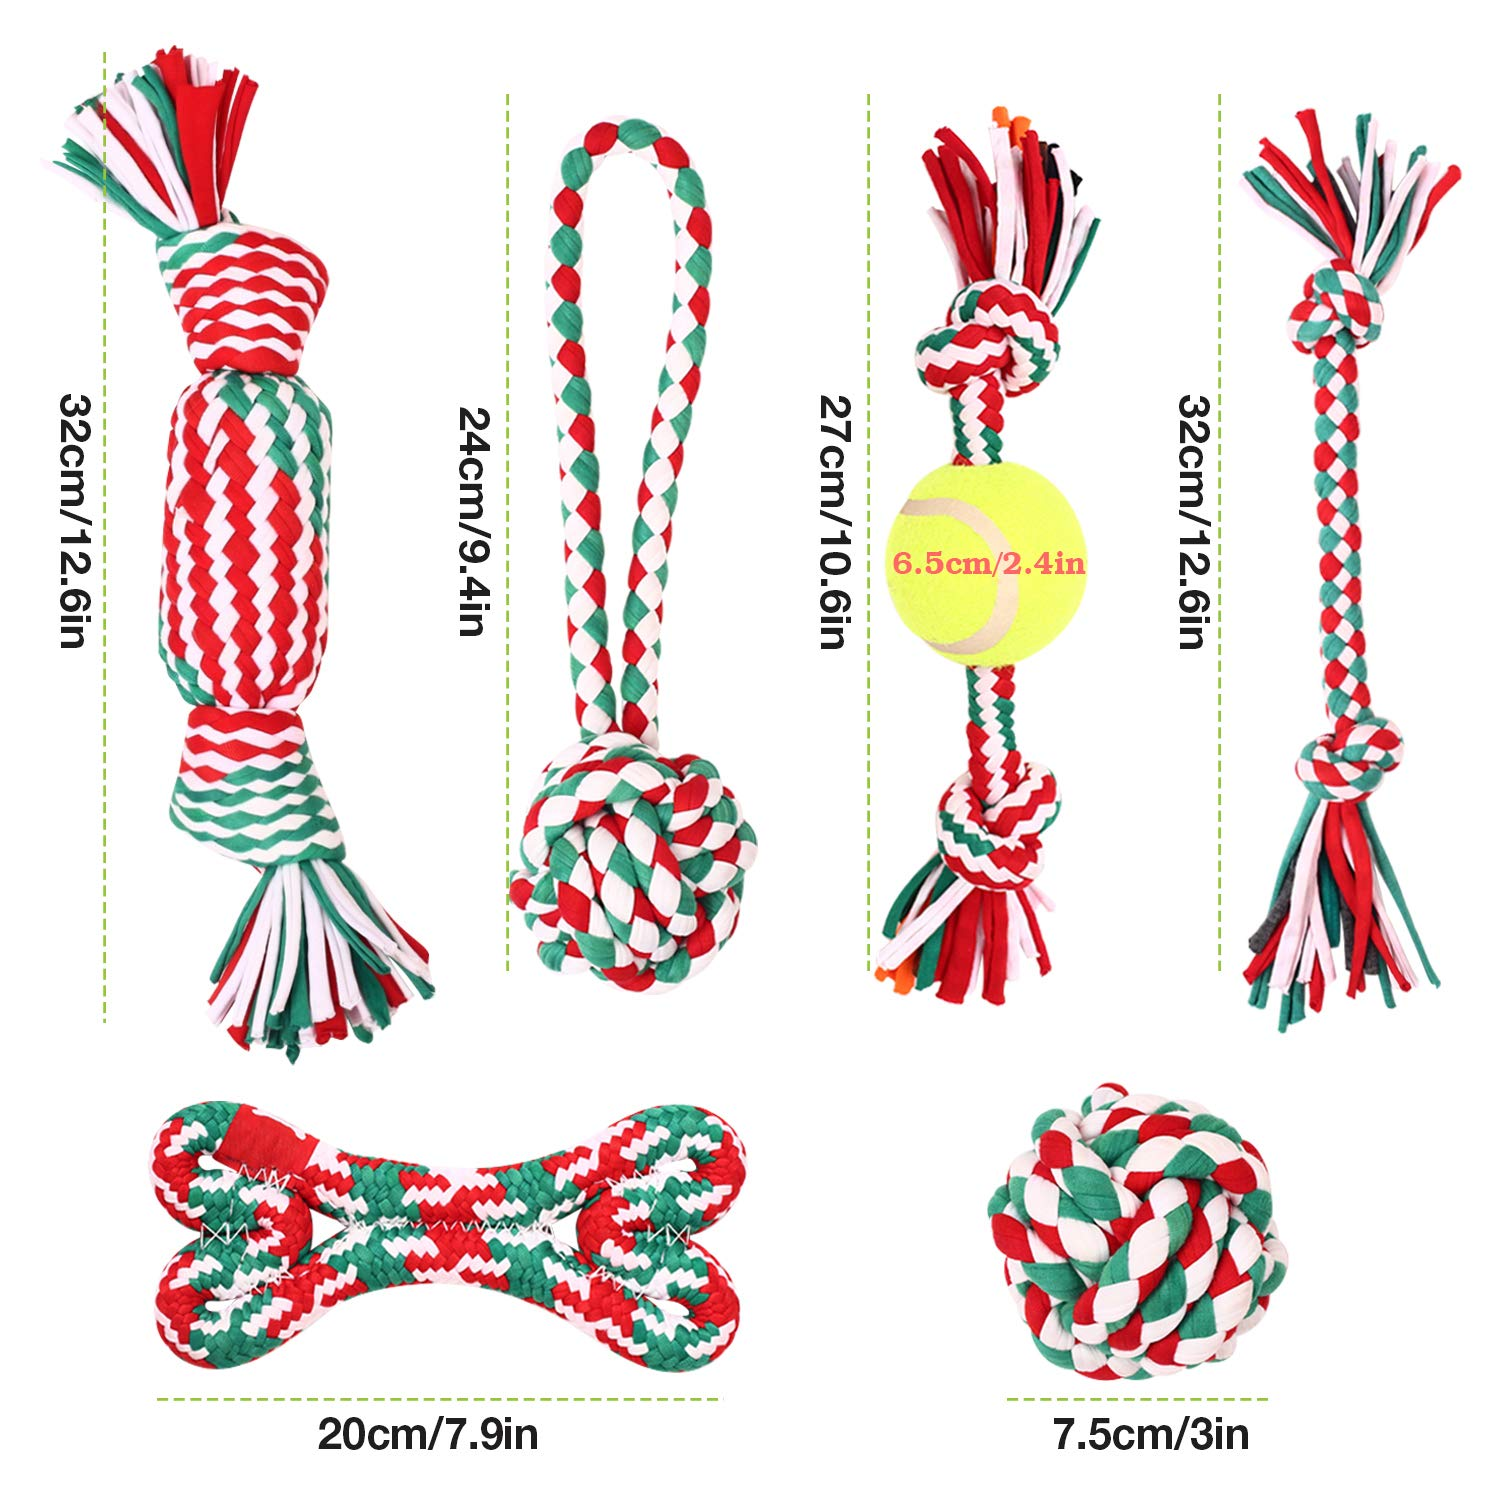 Pecute Dog Squeaky Rope Chew Toys, Cloth Rope Chew Toys 6pcs Set for Dog Molars Training, Cleaning Tooth Oral Cavity, Applicable to Small and Medium-Sized Dogs